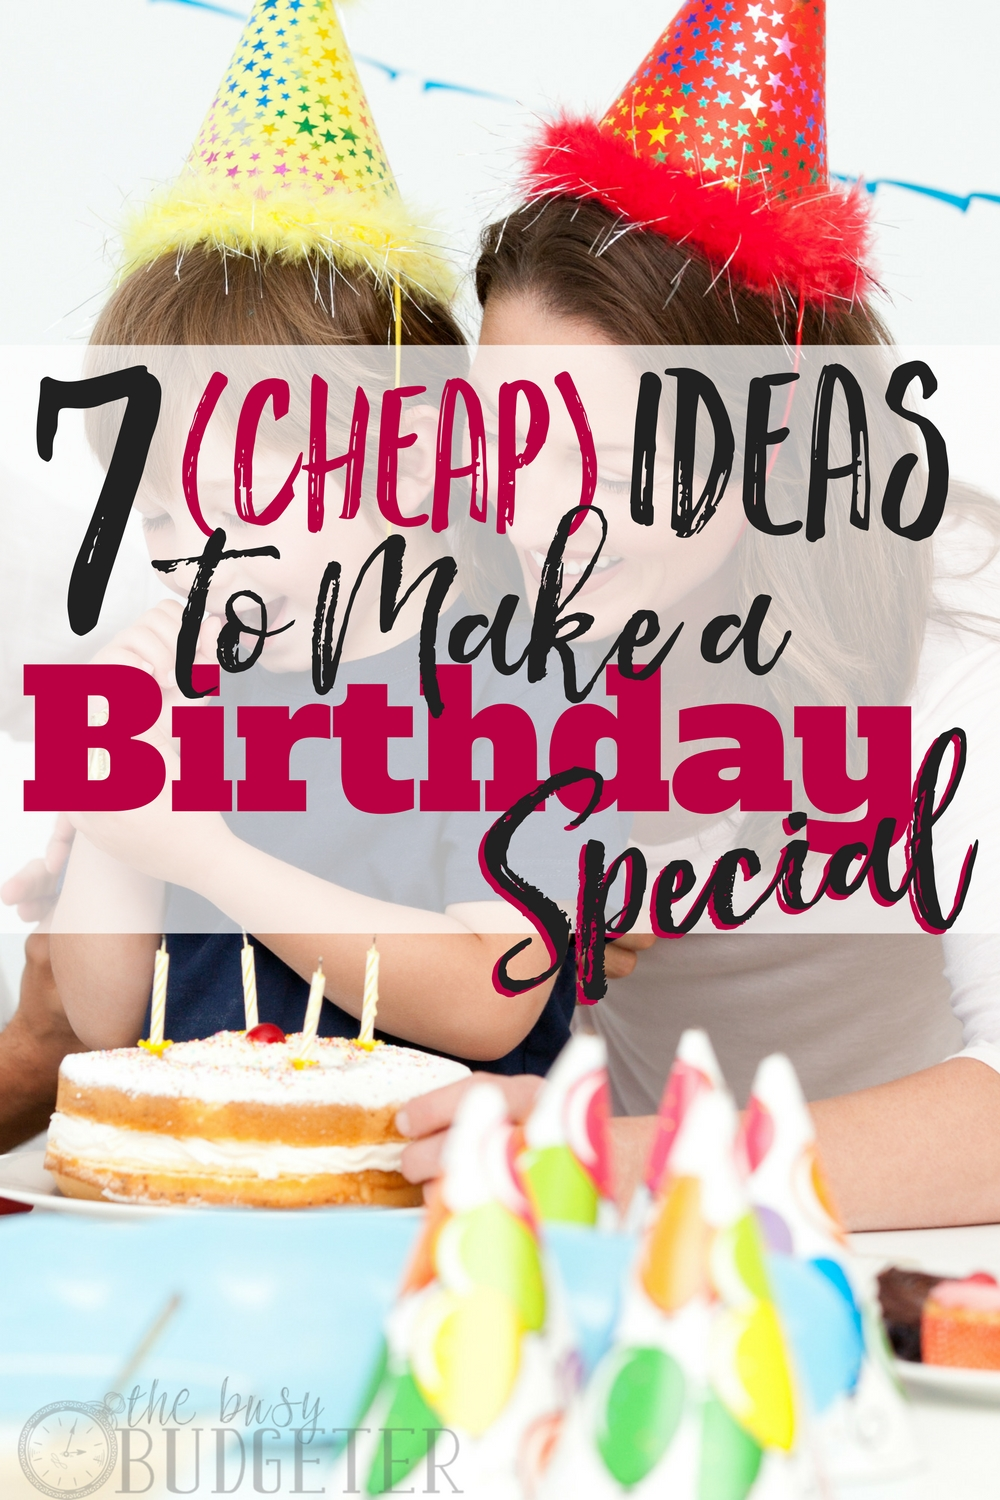 These ideas to make a birthday special are amazing! Not only are they super budget friendly but now I can throw my kids and husband an awesome birthday without having to worry about money. These tips are cheap and easy and so much fun!